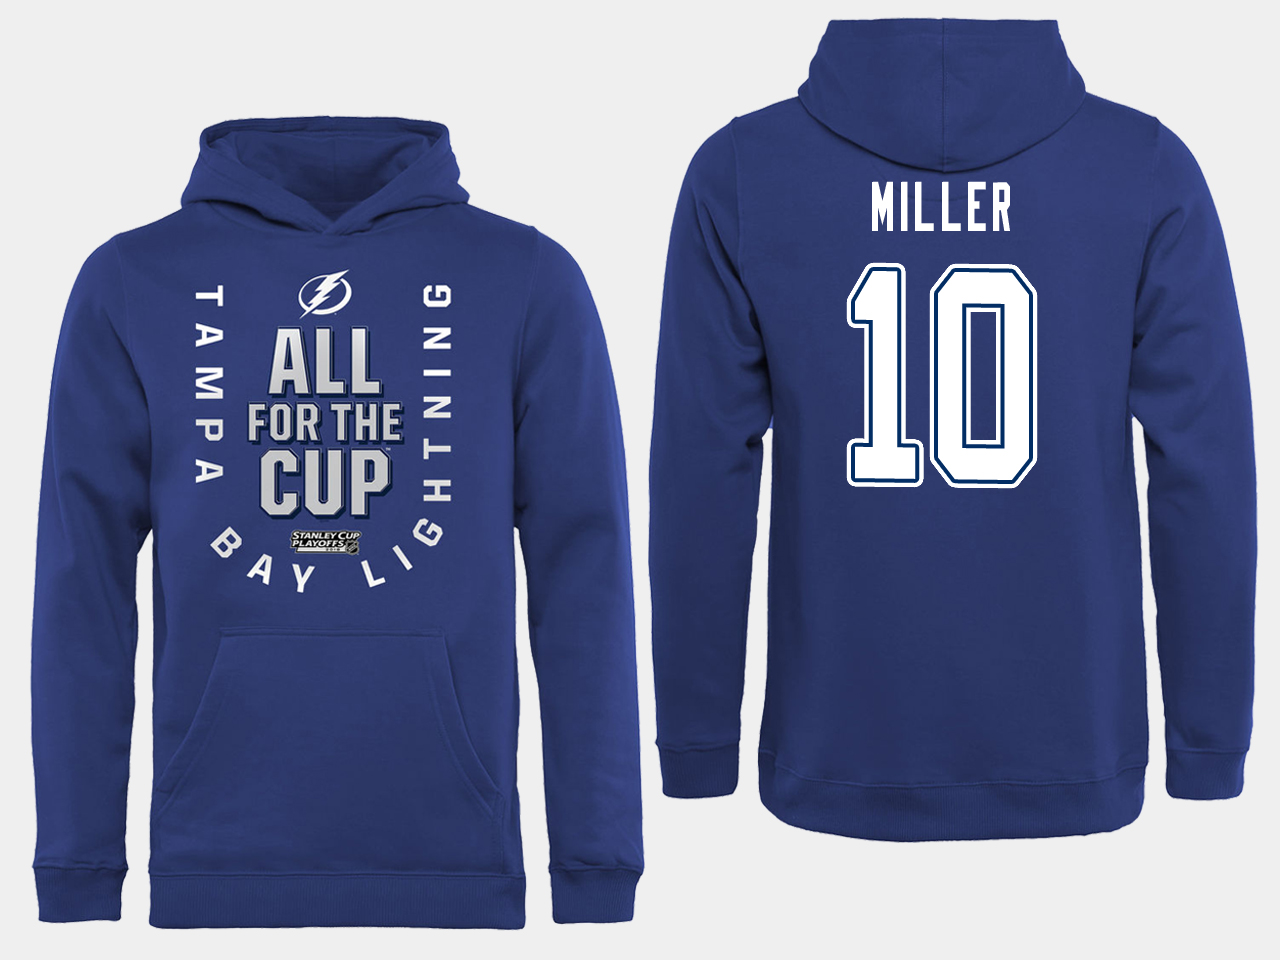 NHL Men adidas Tampa Bay Lightning 10 Miller blue All for the Cup Hoodie